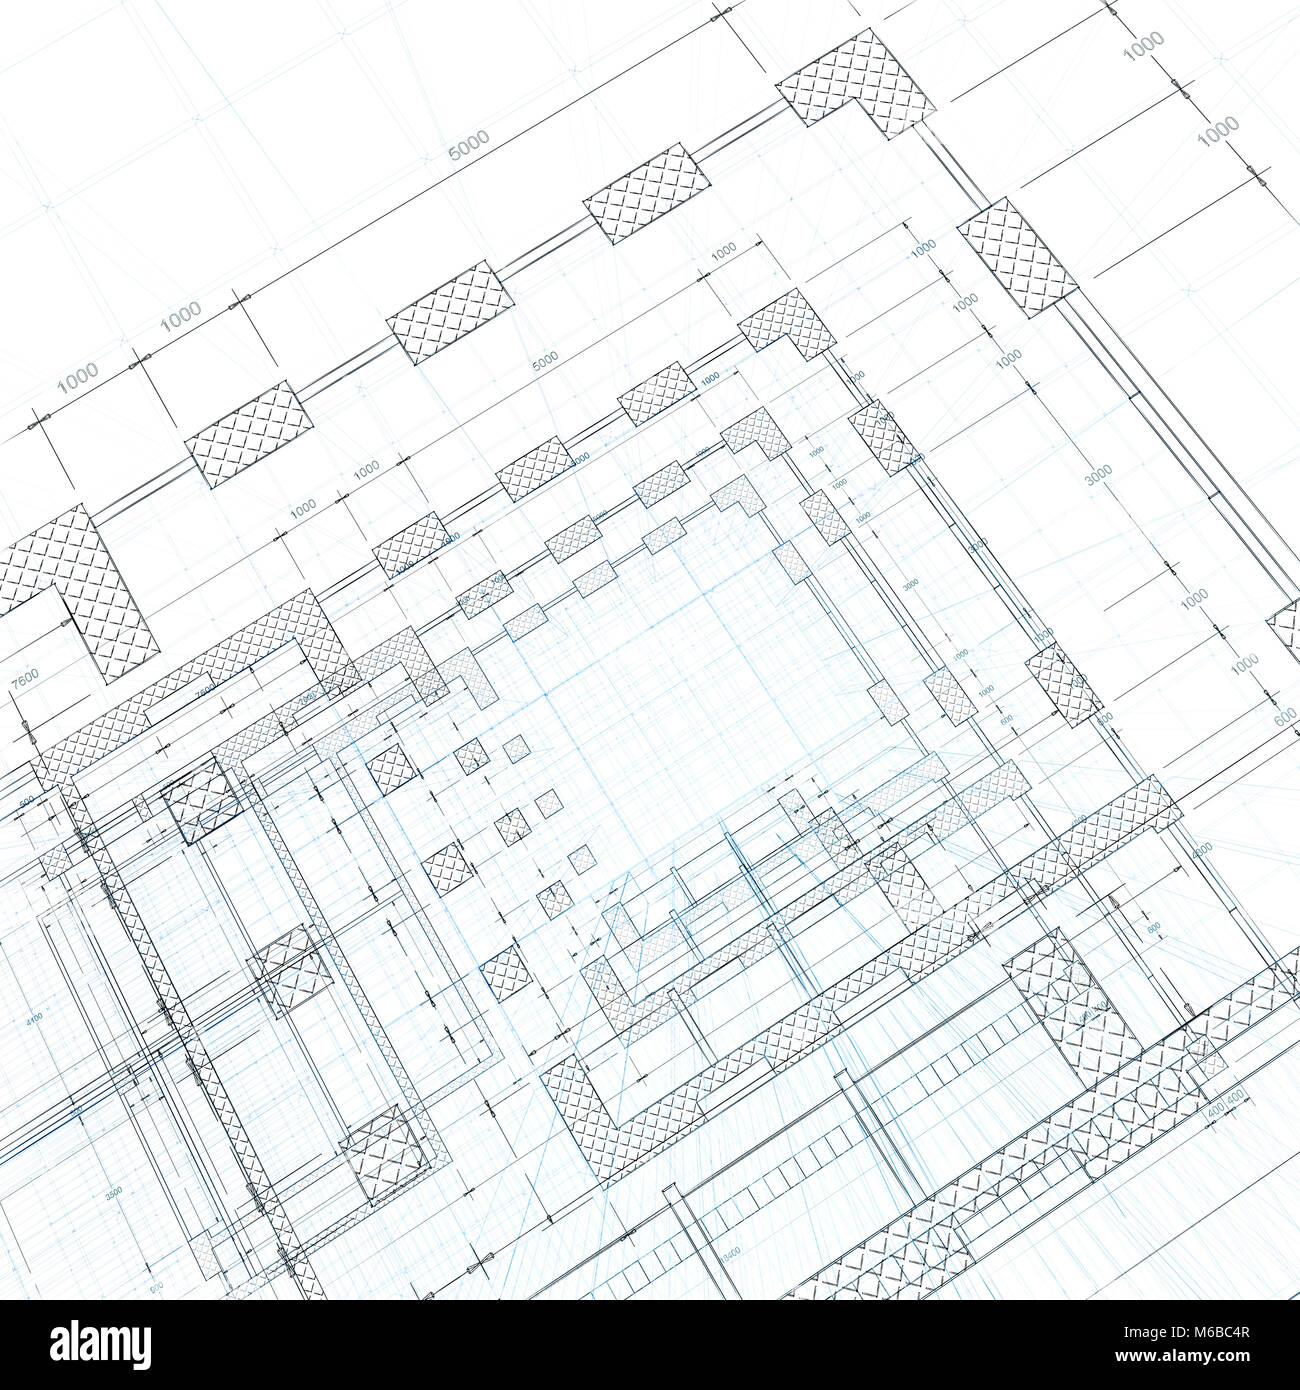 Estate office stock photos estate office stock images page 2 architecture blueprint design and 3d rendering model my own stock image malvernweather Gallery